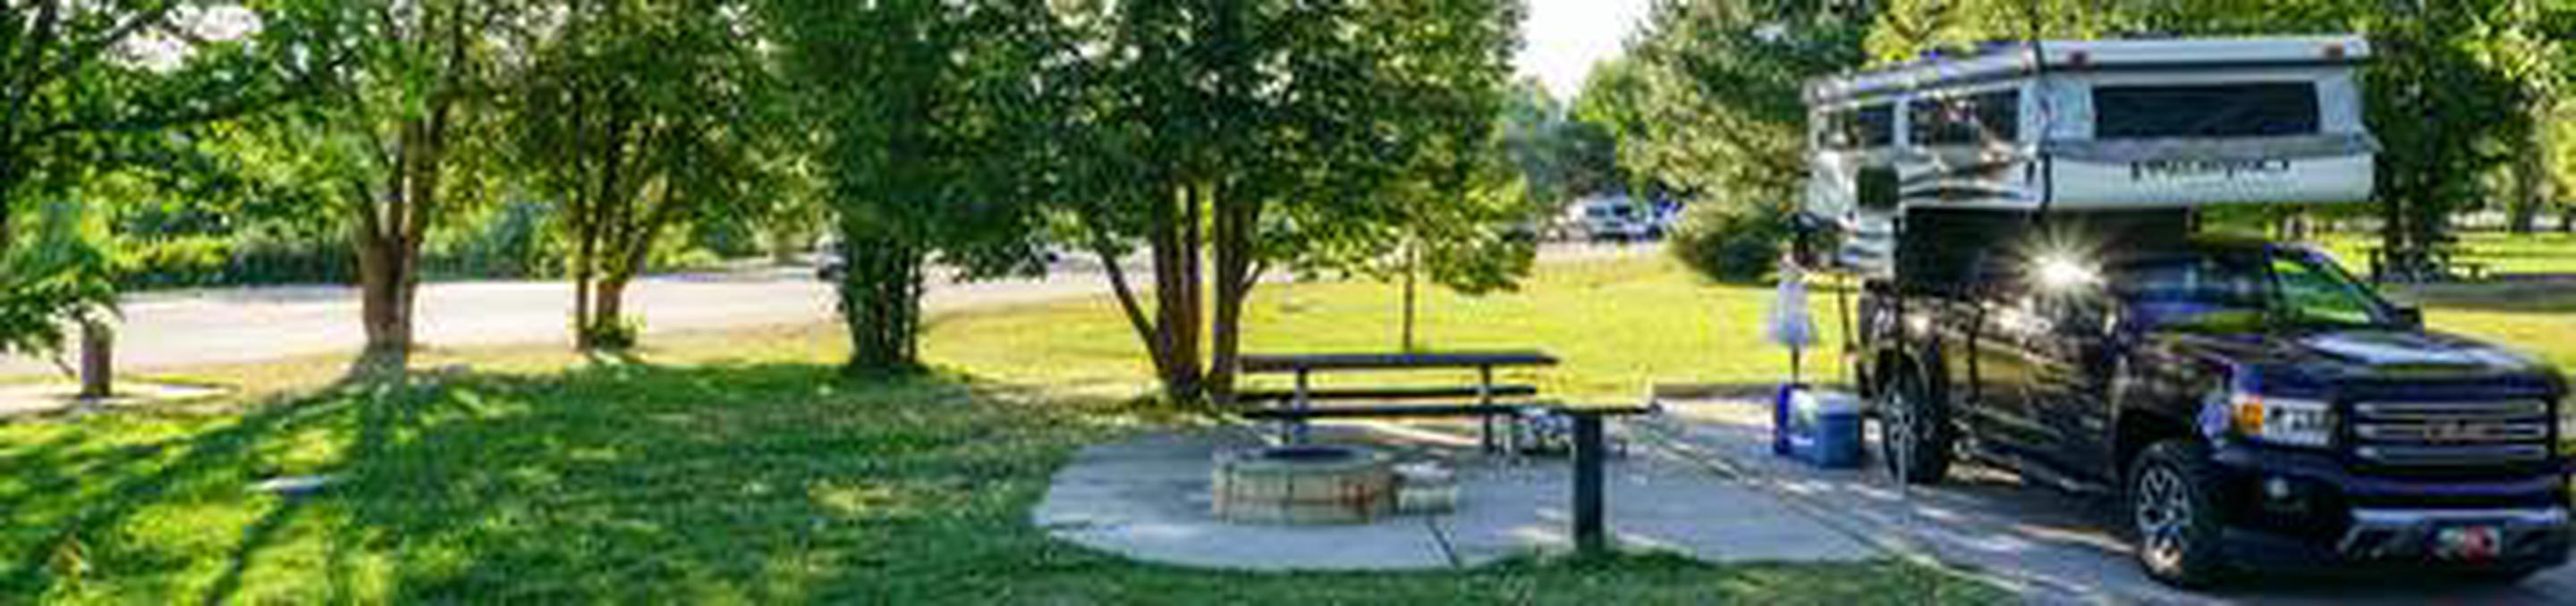 Anderson Cove Campground A-004